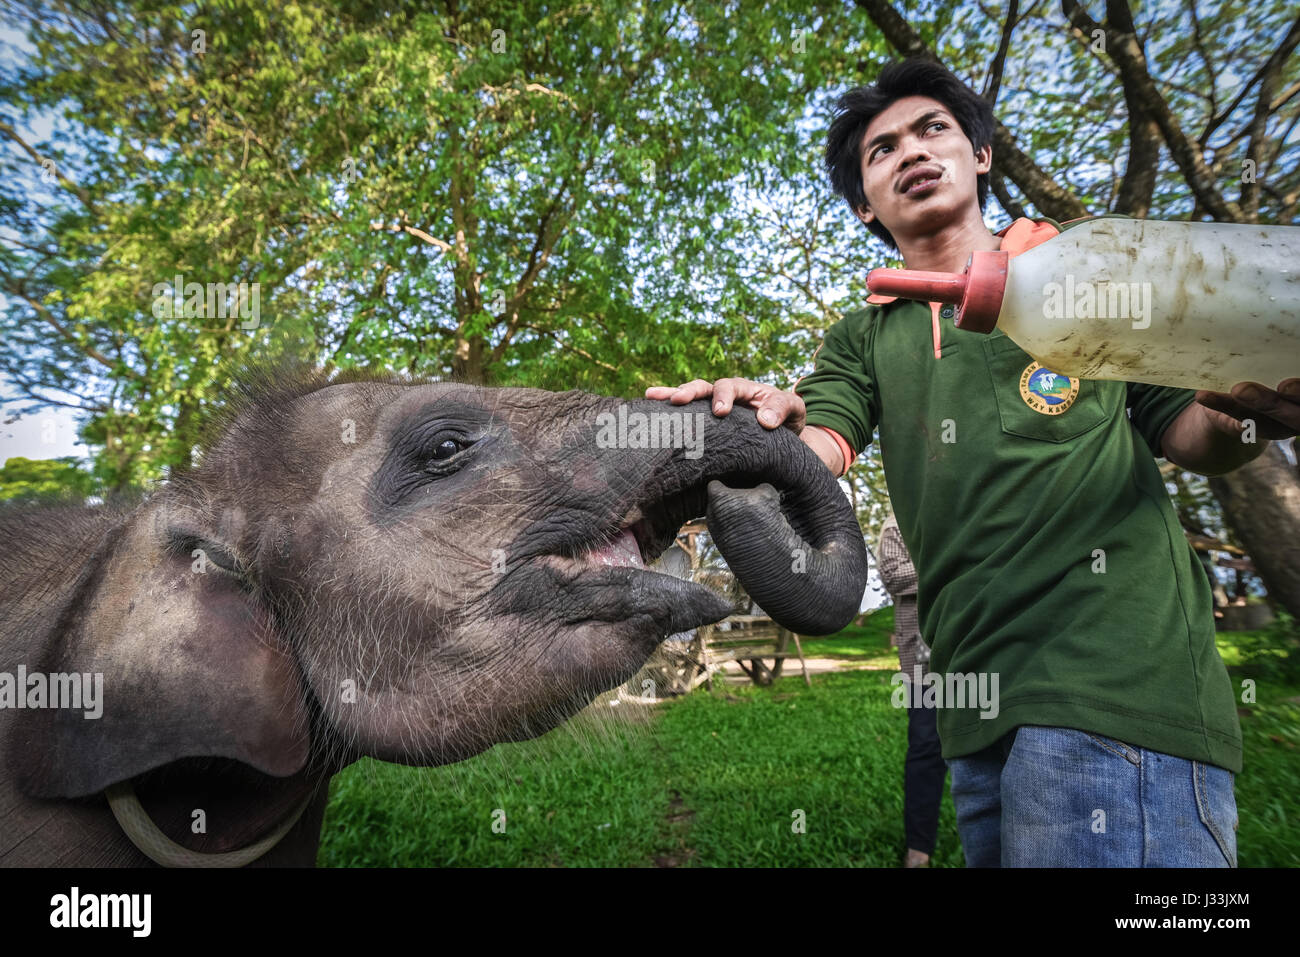 Milk time for Yekti, an elephant calf that rescued after found injured and separated from its herd outside Way Kambas - Stock Image